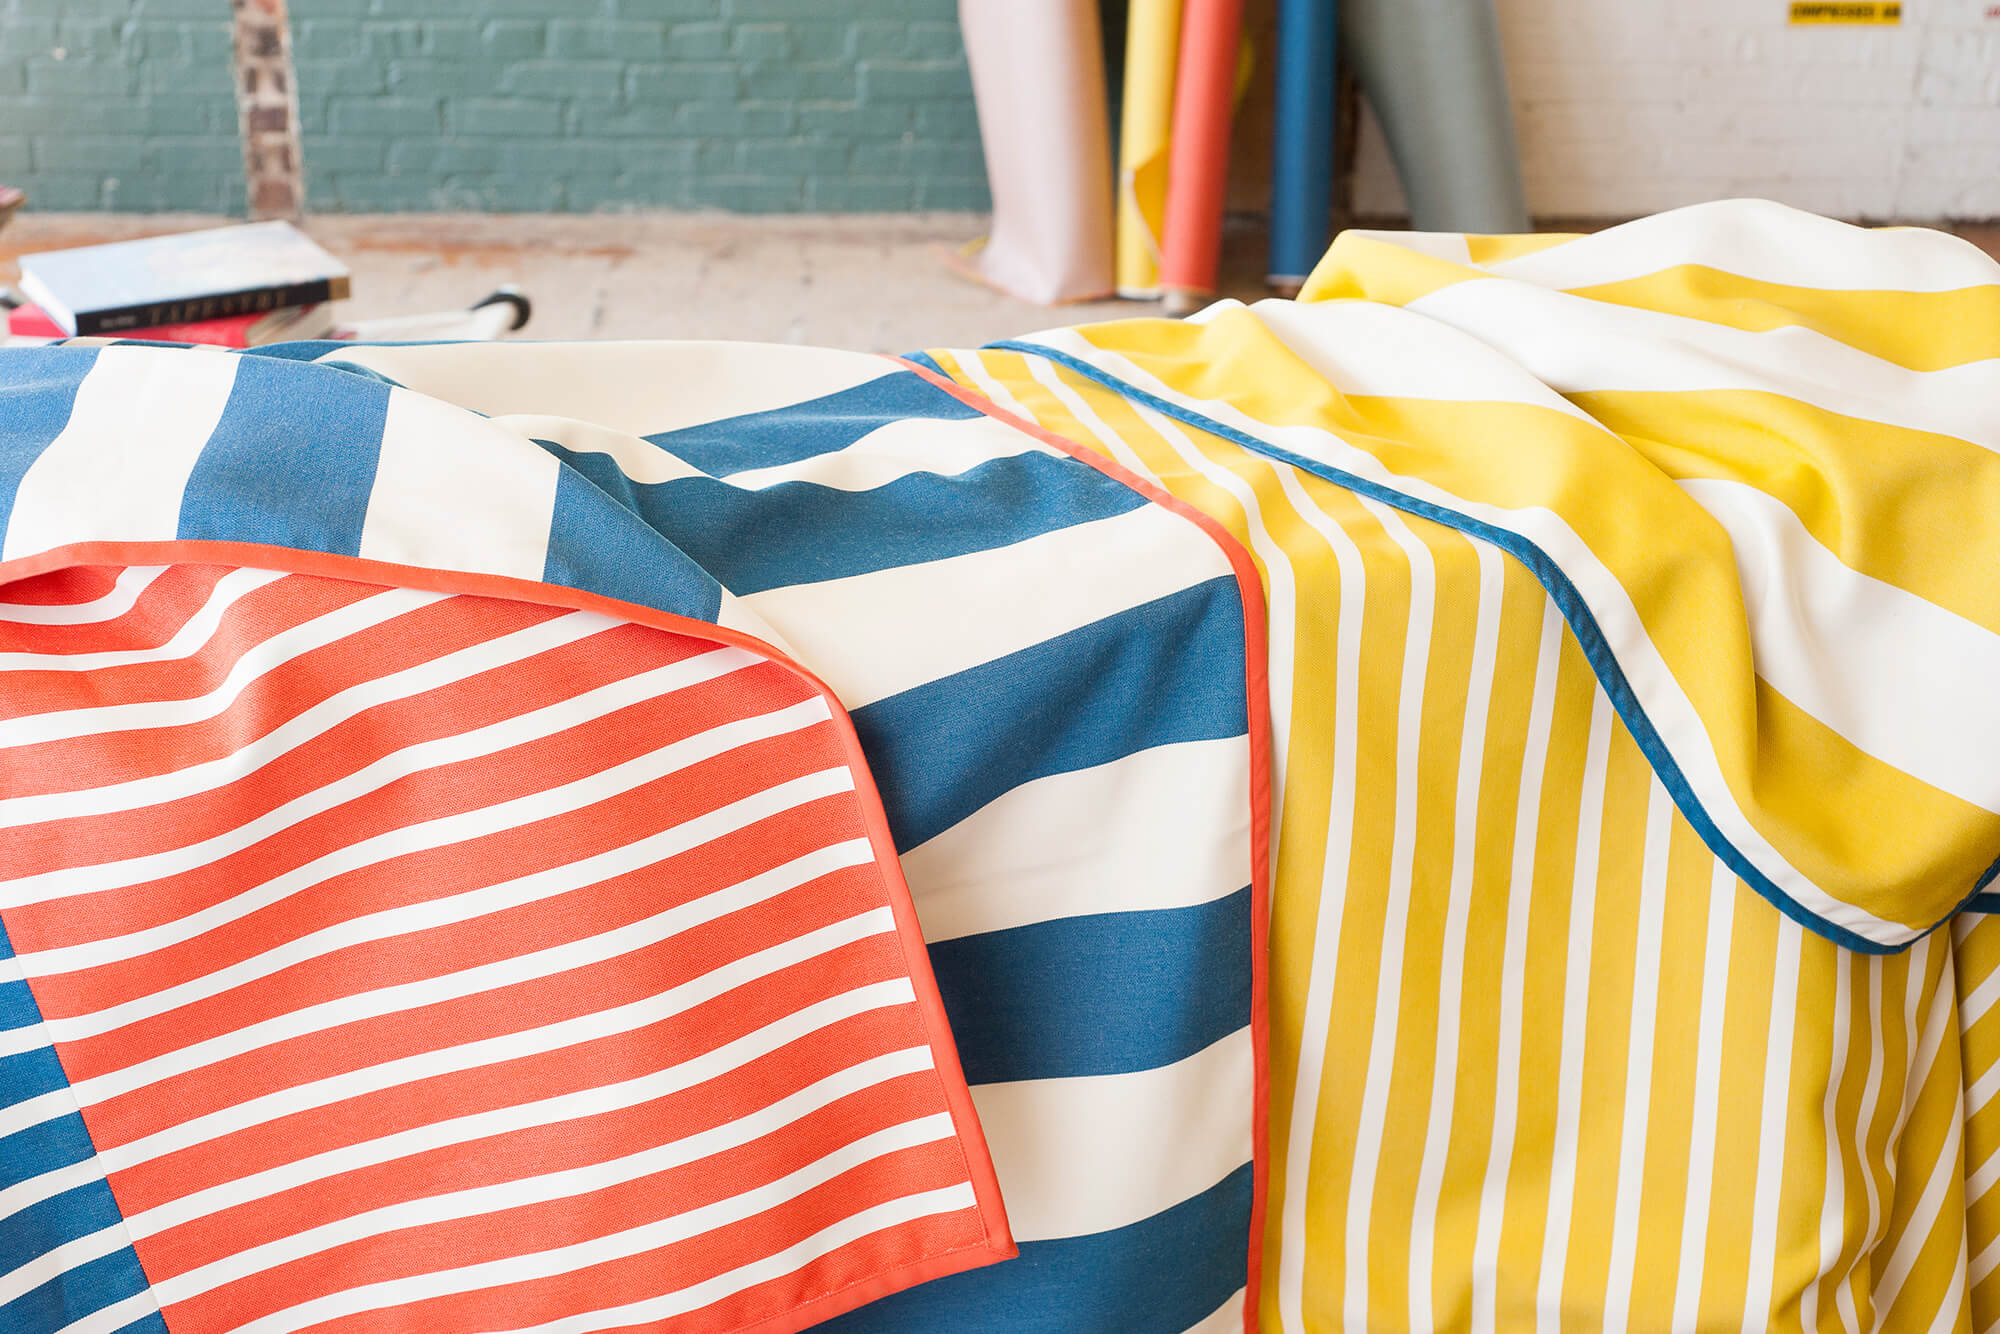 Draped fabrics in bright yellow and white, blue and white, and red and white stripes